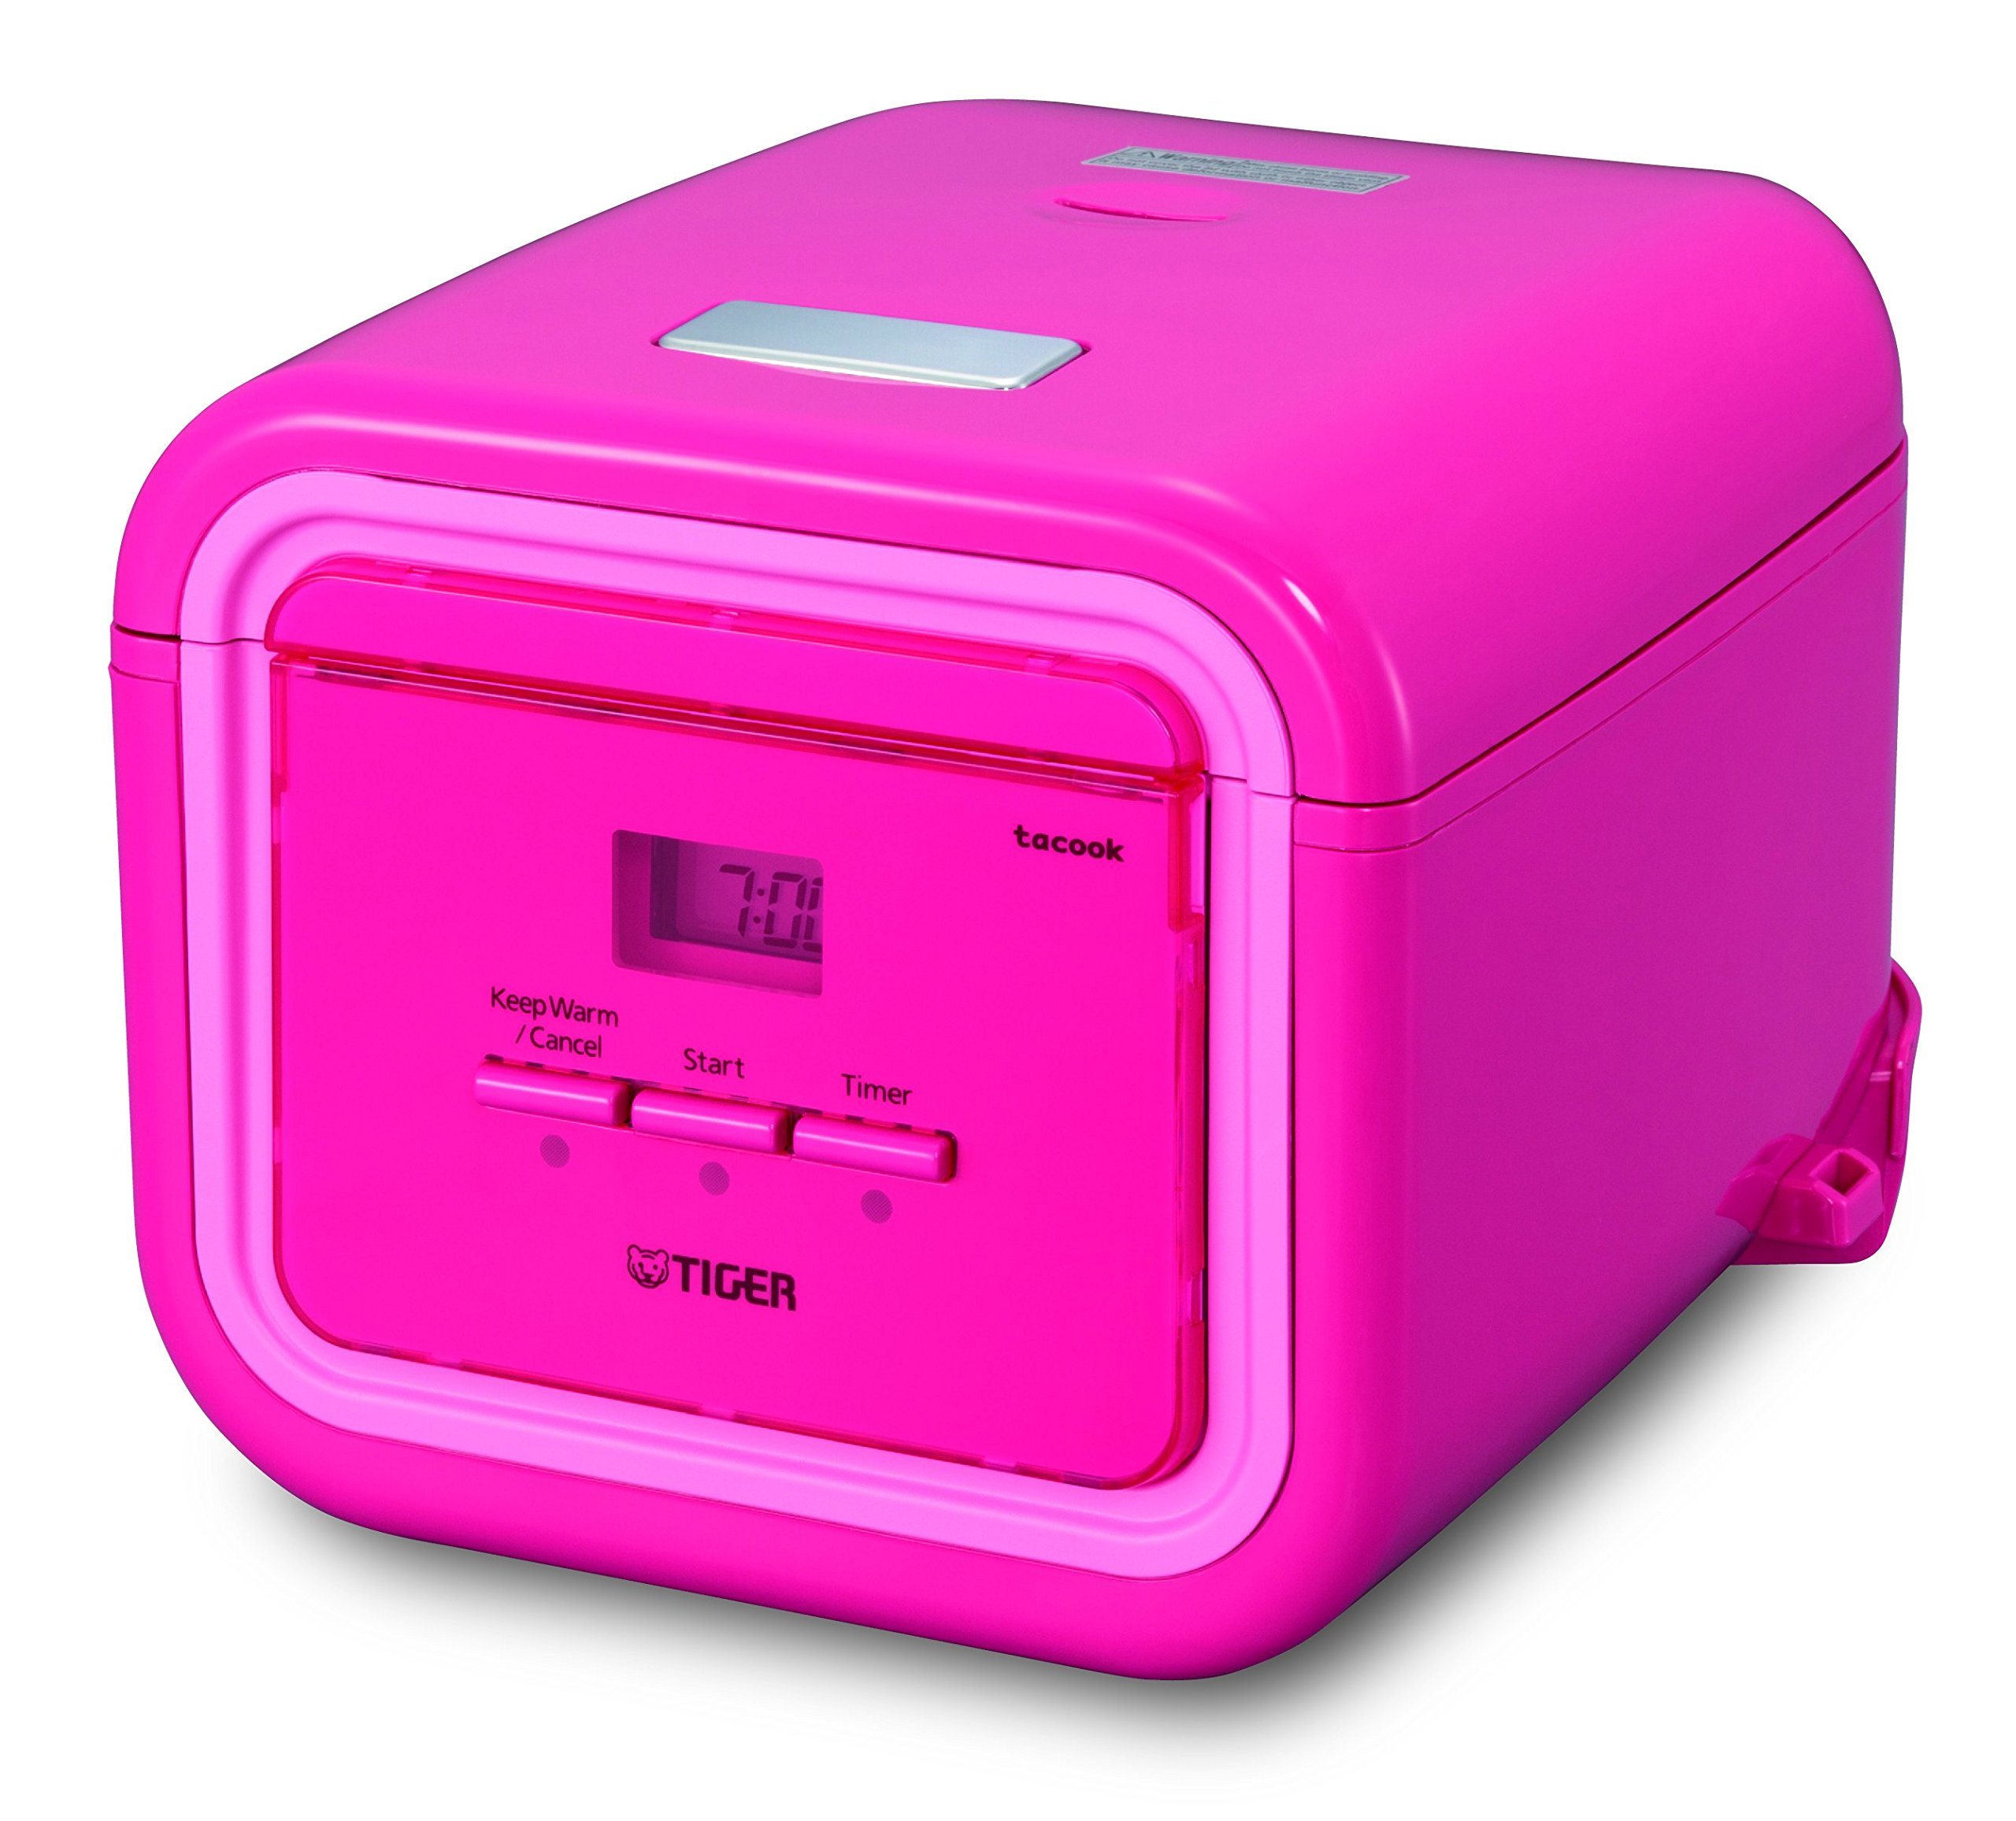 Tiger JAJ-A55U PP 3-Cup (Uncooked) Micom Rice Cooker with Slow Cook, Steam, & Cake Bake, Passion Pink